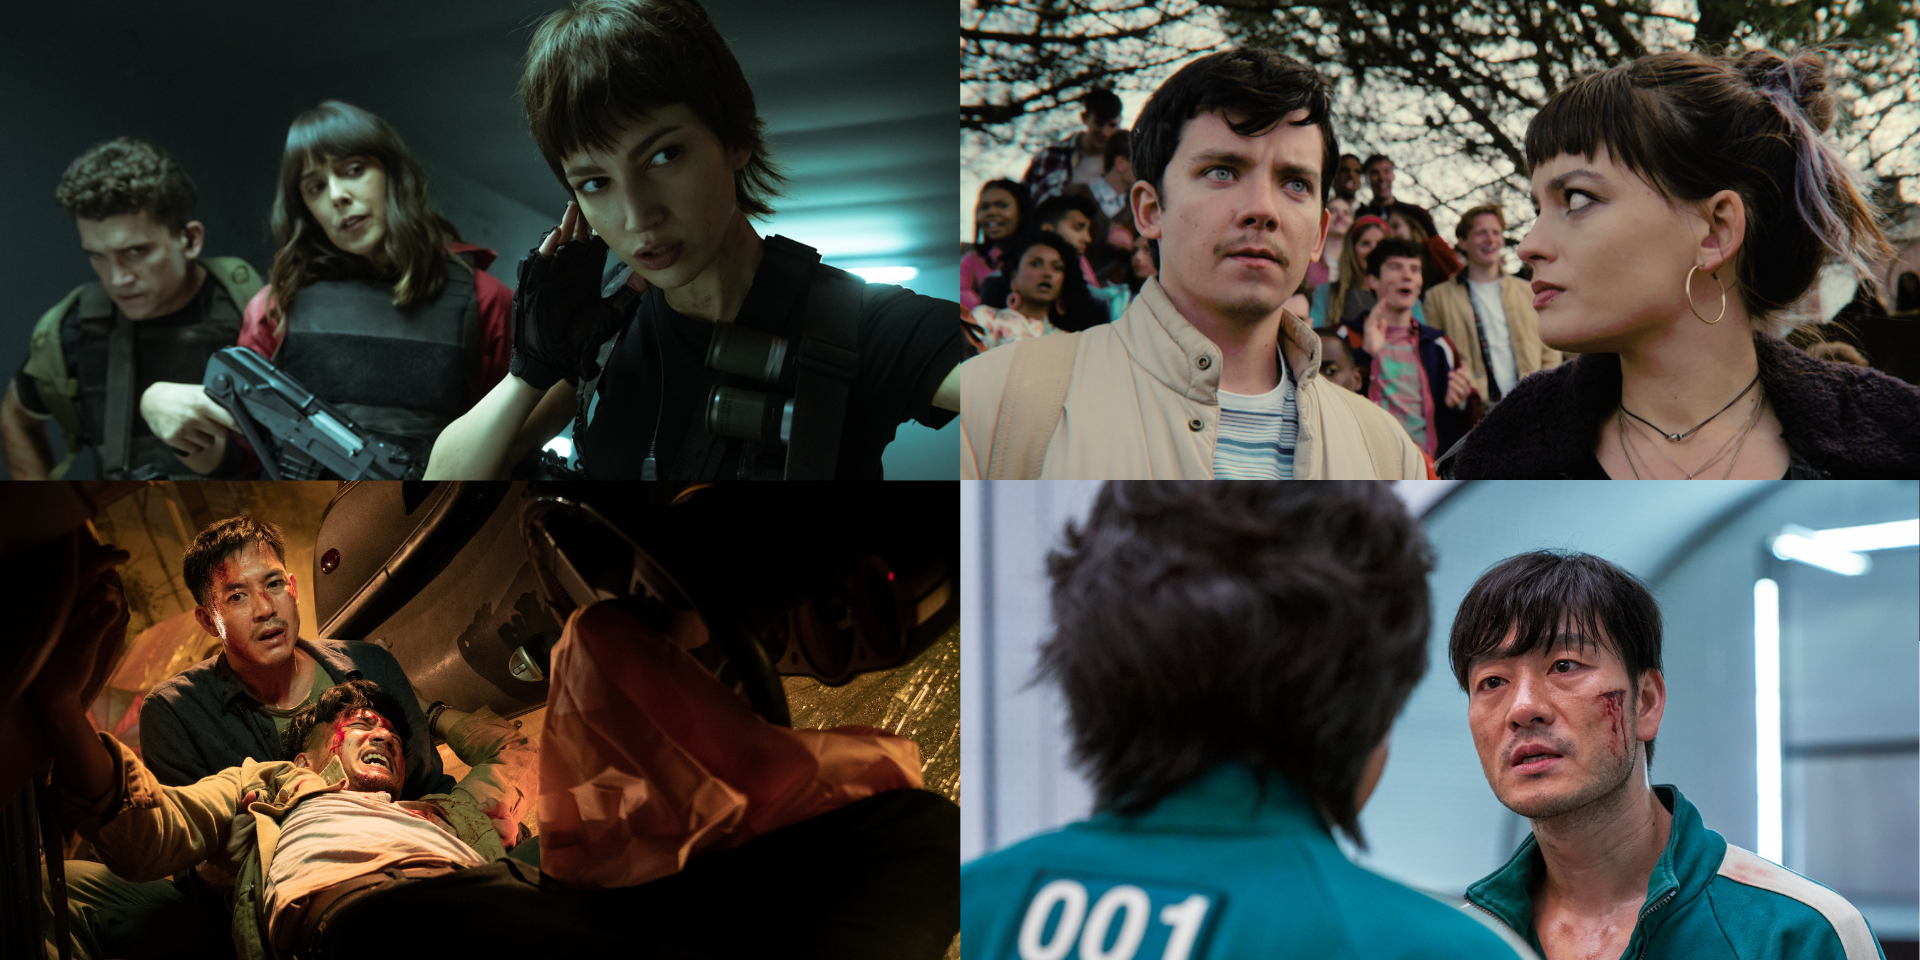 Here's what's coming to Netflix this September: Money Heist, Sex Education, Squid Game, Bangkok Breaking, and more